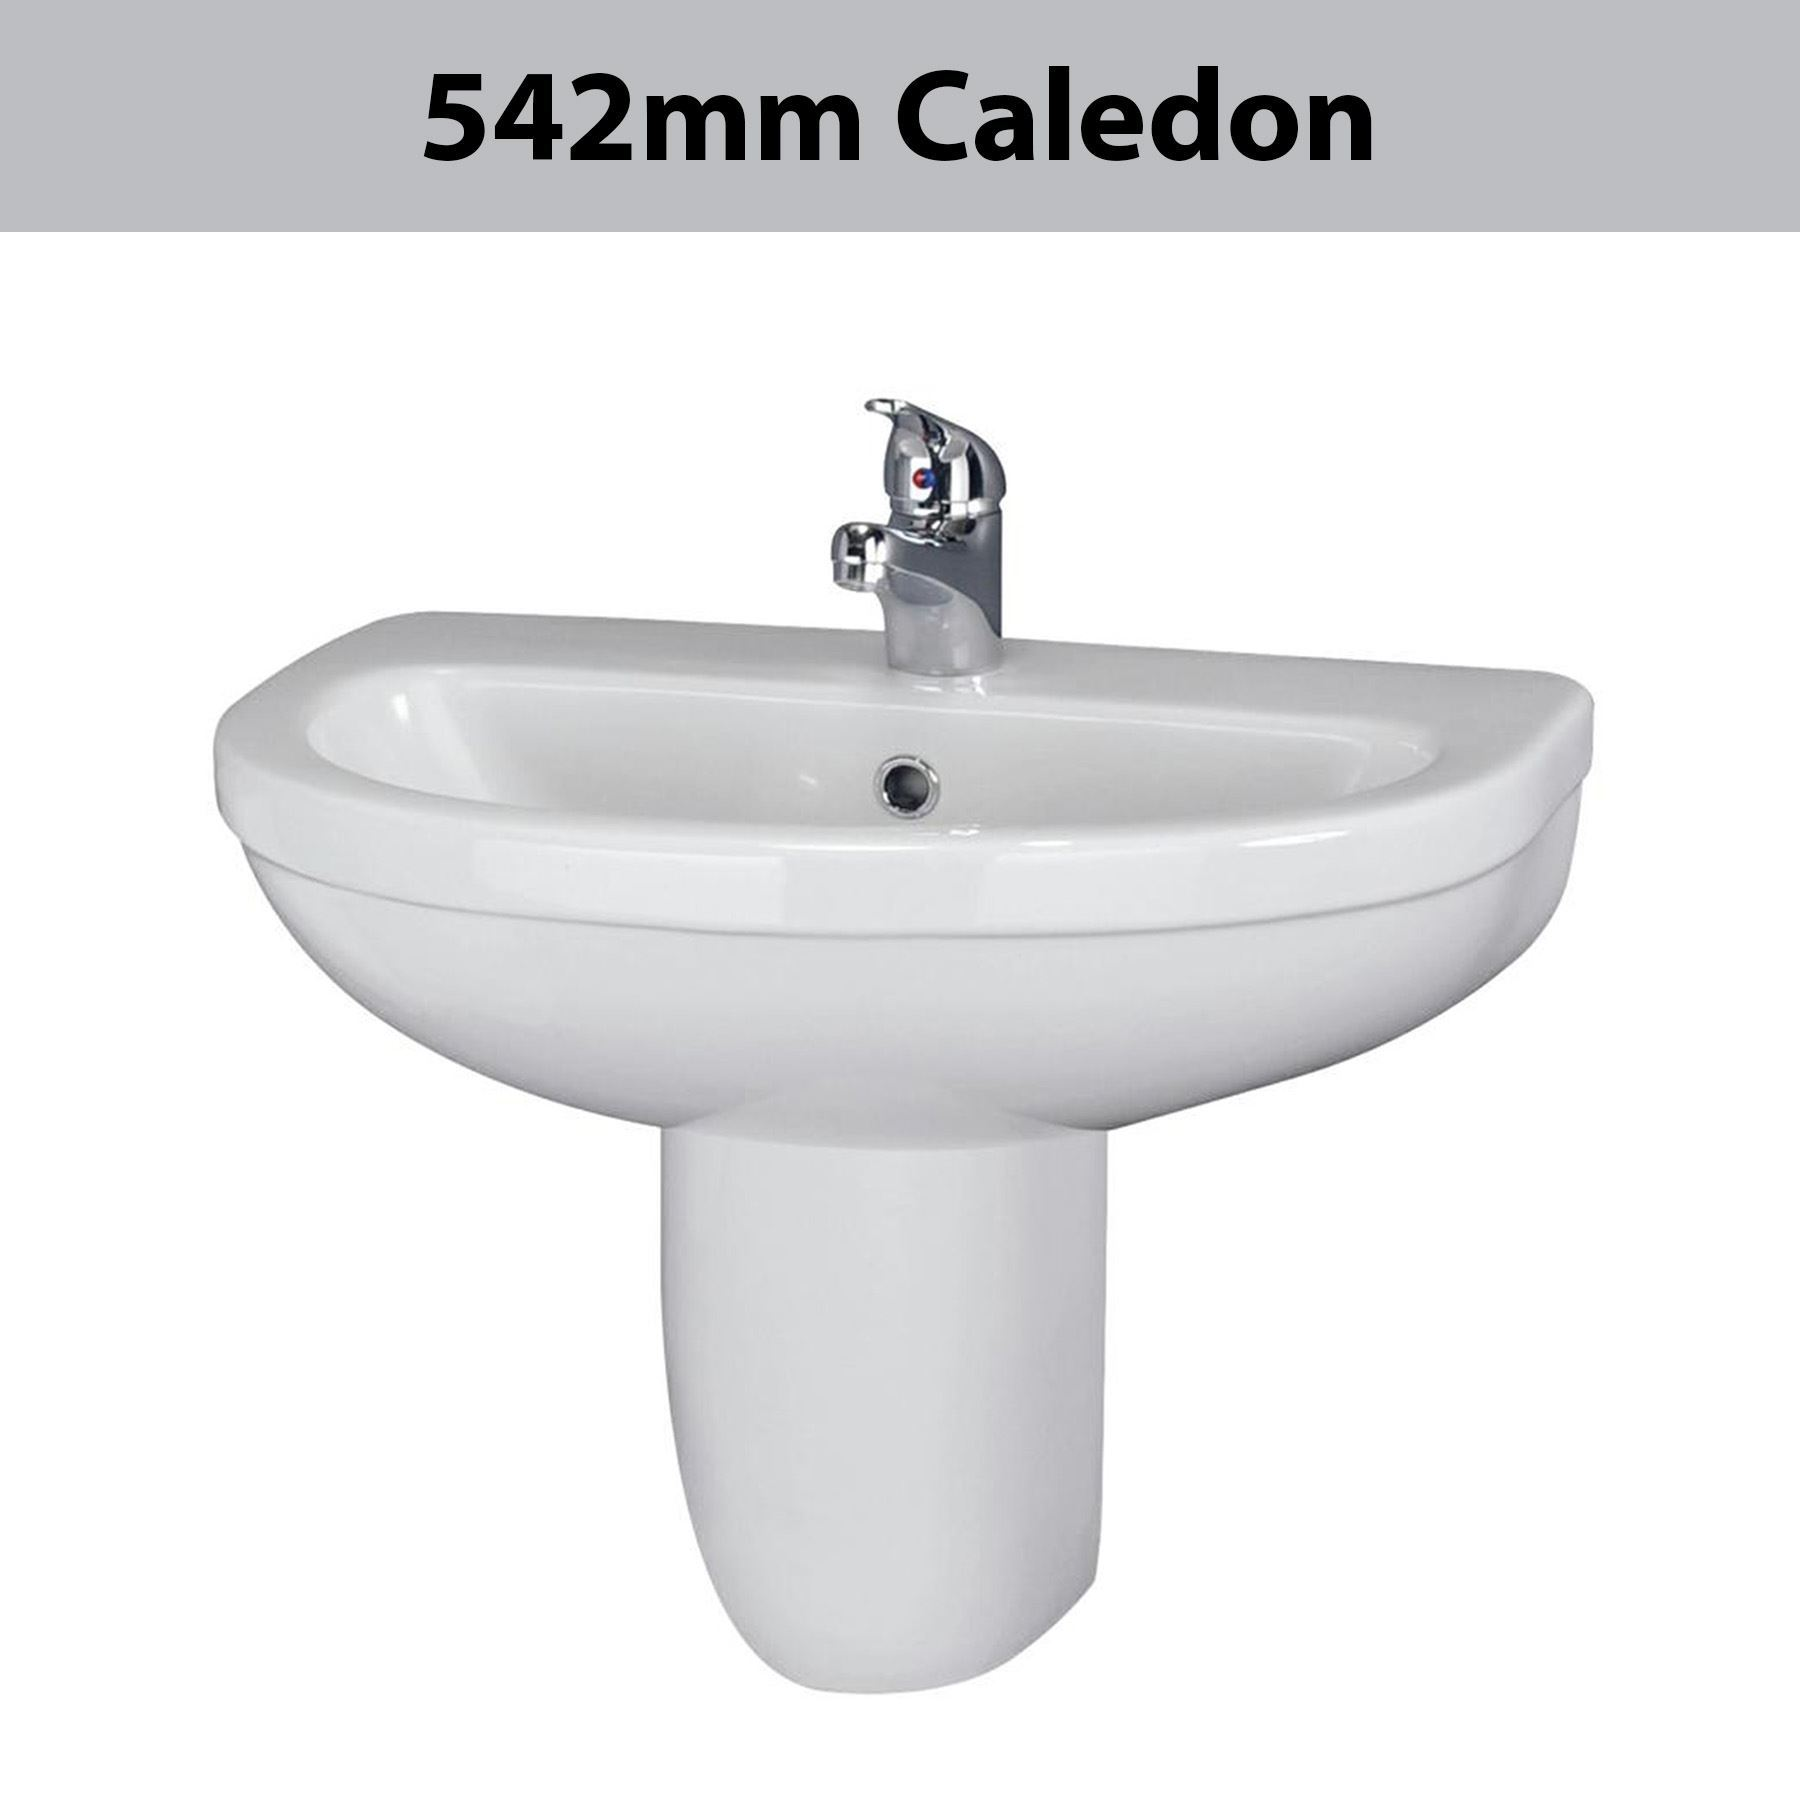 ... -Ceramic-Wall-Mounted-Basin-Sink-Semi-Pedestal-Bathroom-Cloakroom